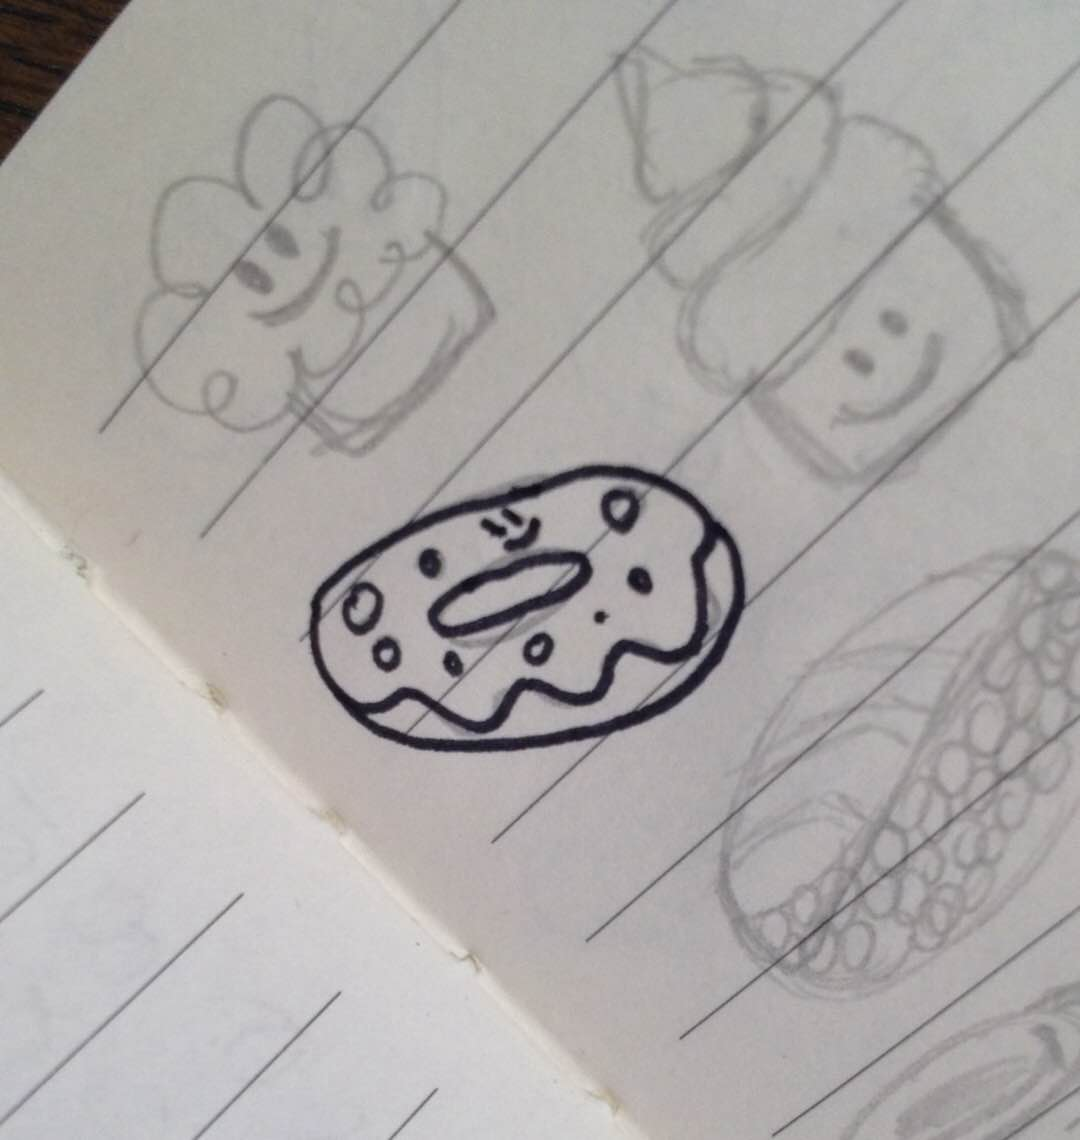 Picture of the original doodle